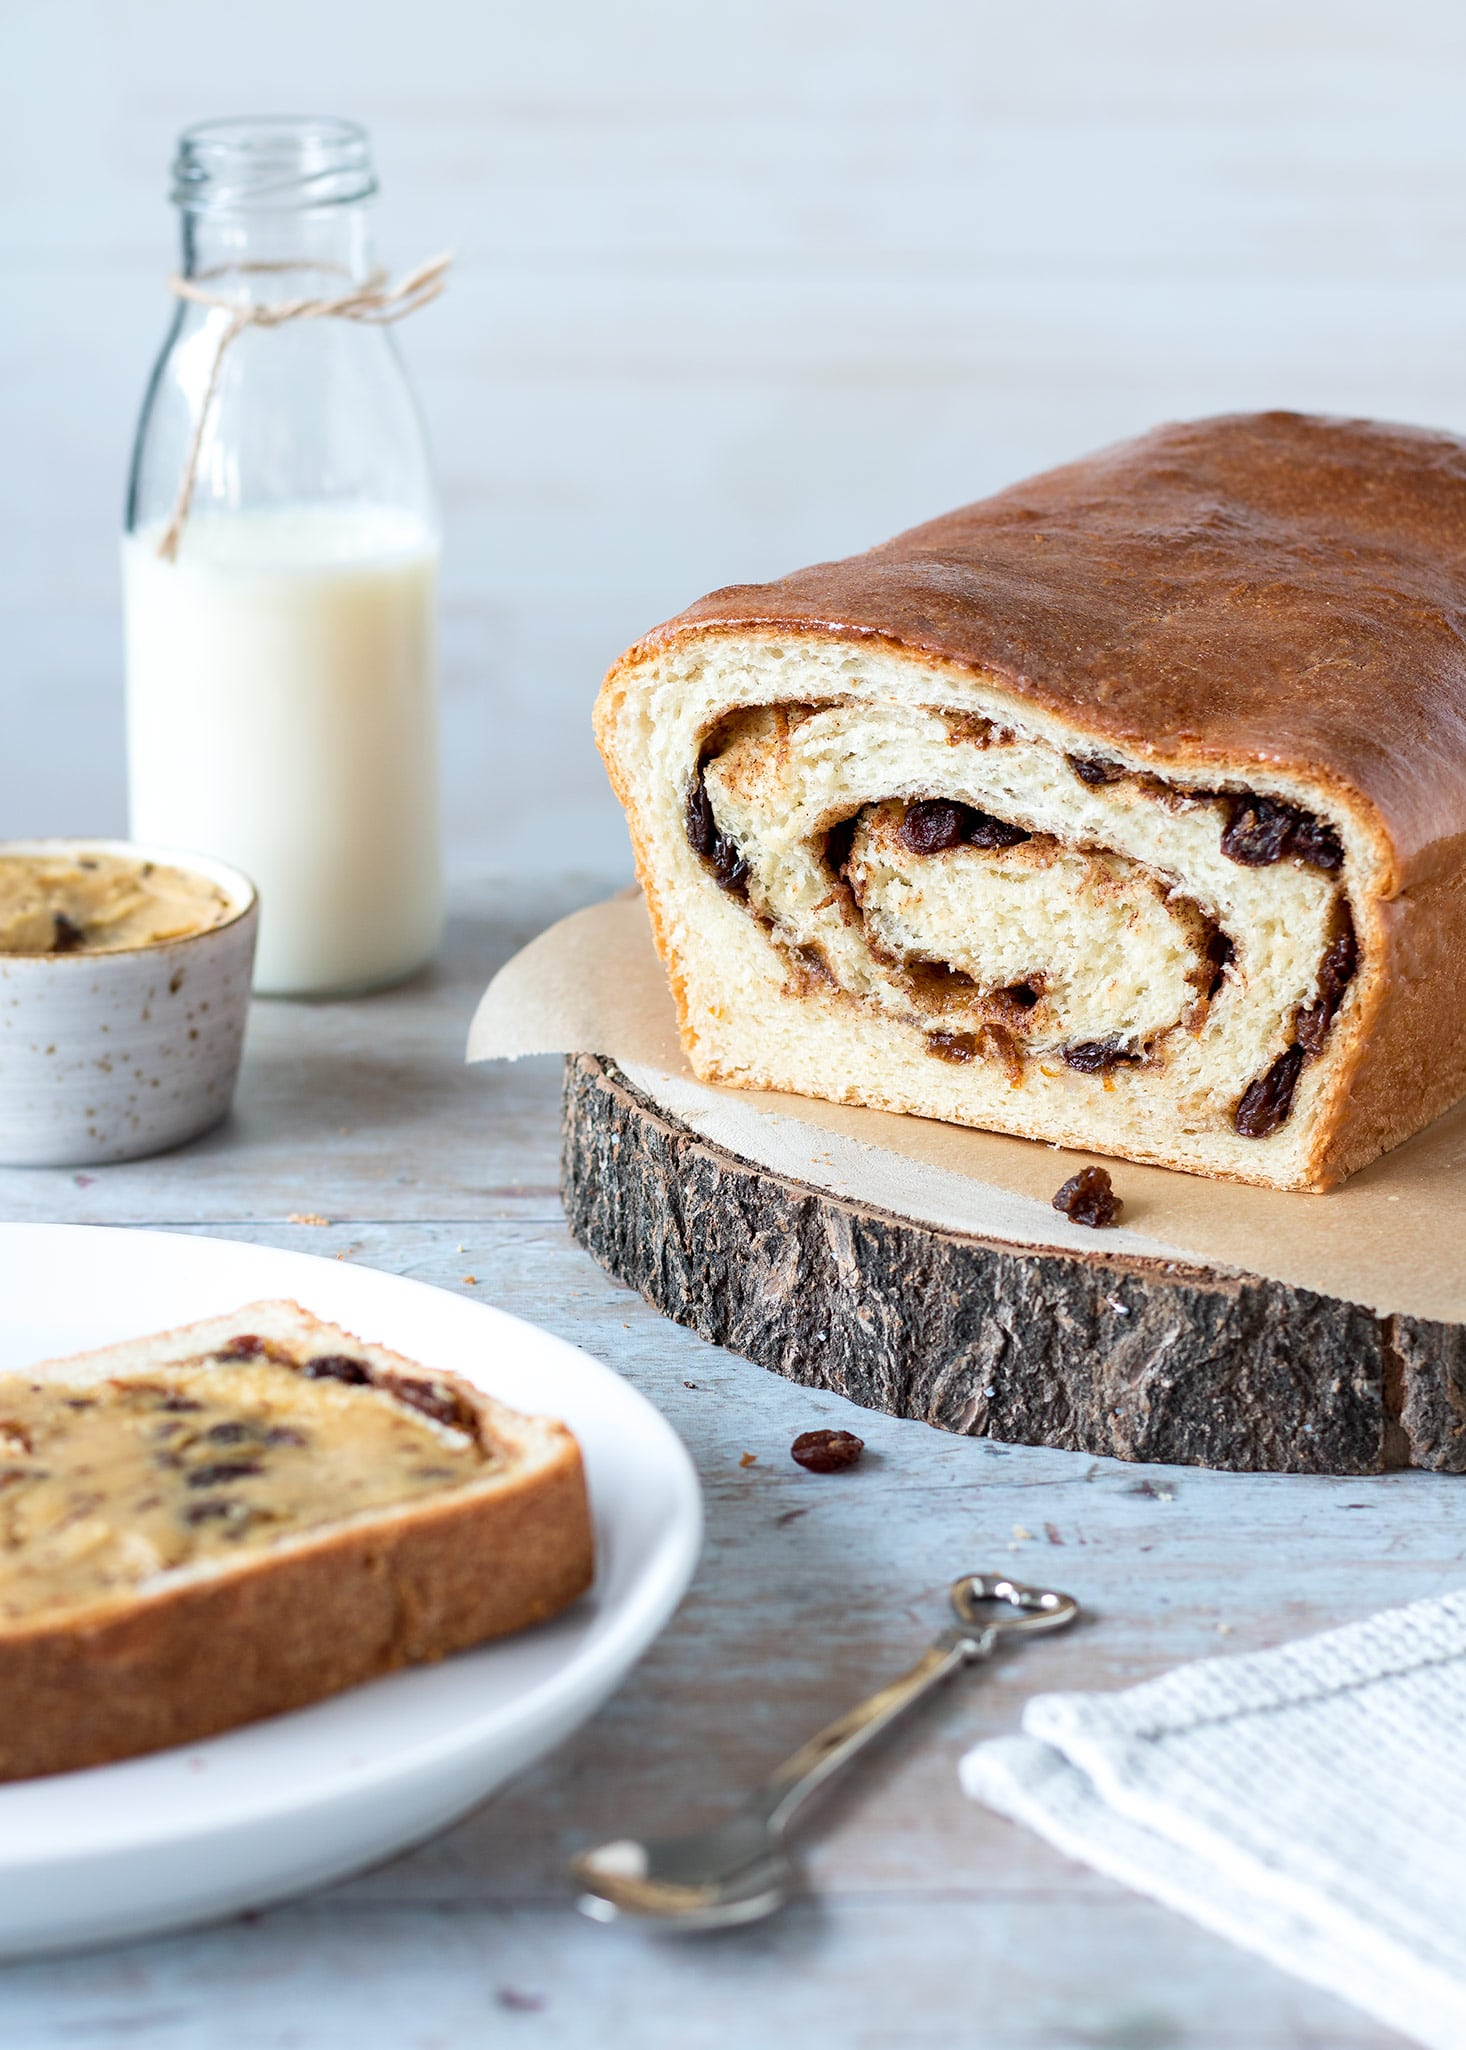 This spiced Easter loaf is filled with a cinnamon fruit swirl and served with deliciously moreish flavoured butter. An exciting, easy twist on hot cross buns that is just as good turned into French toast the next day!